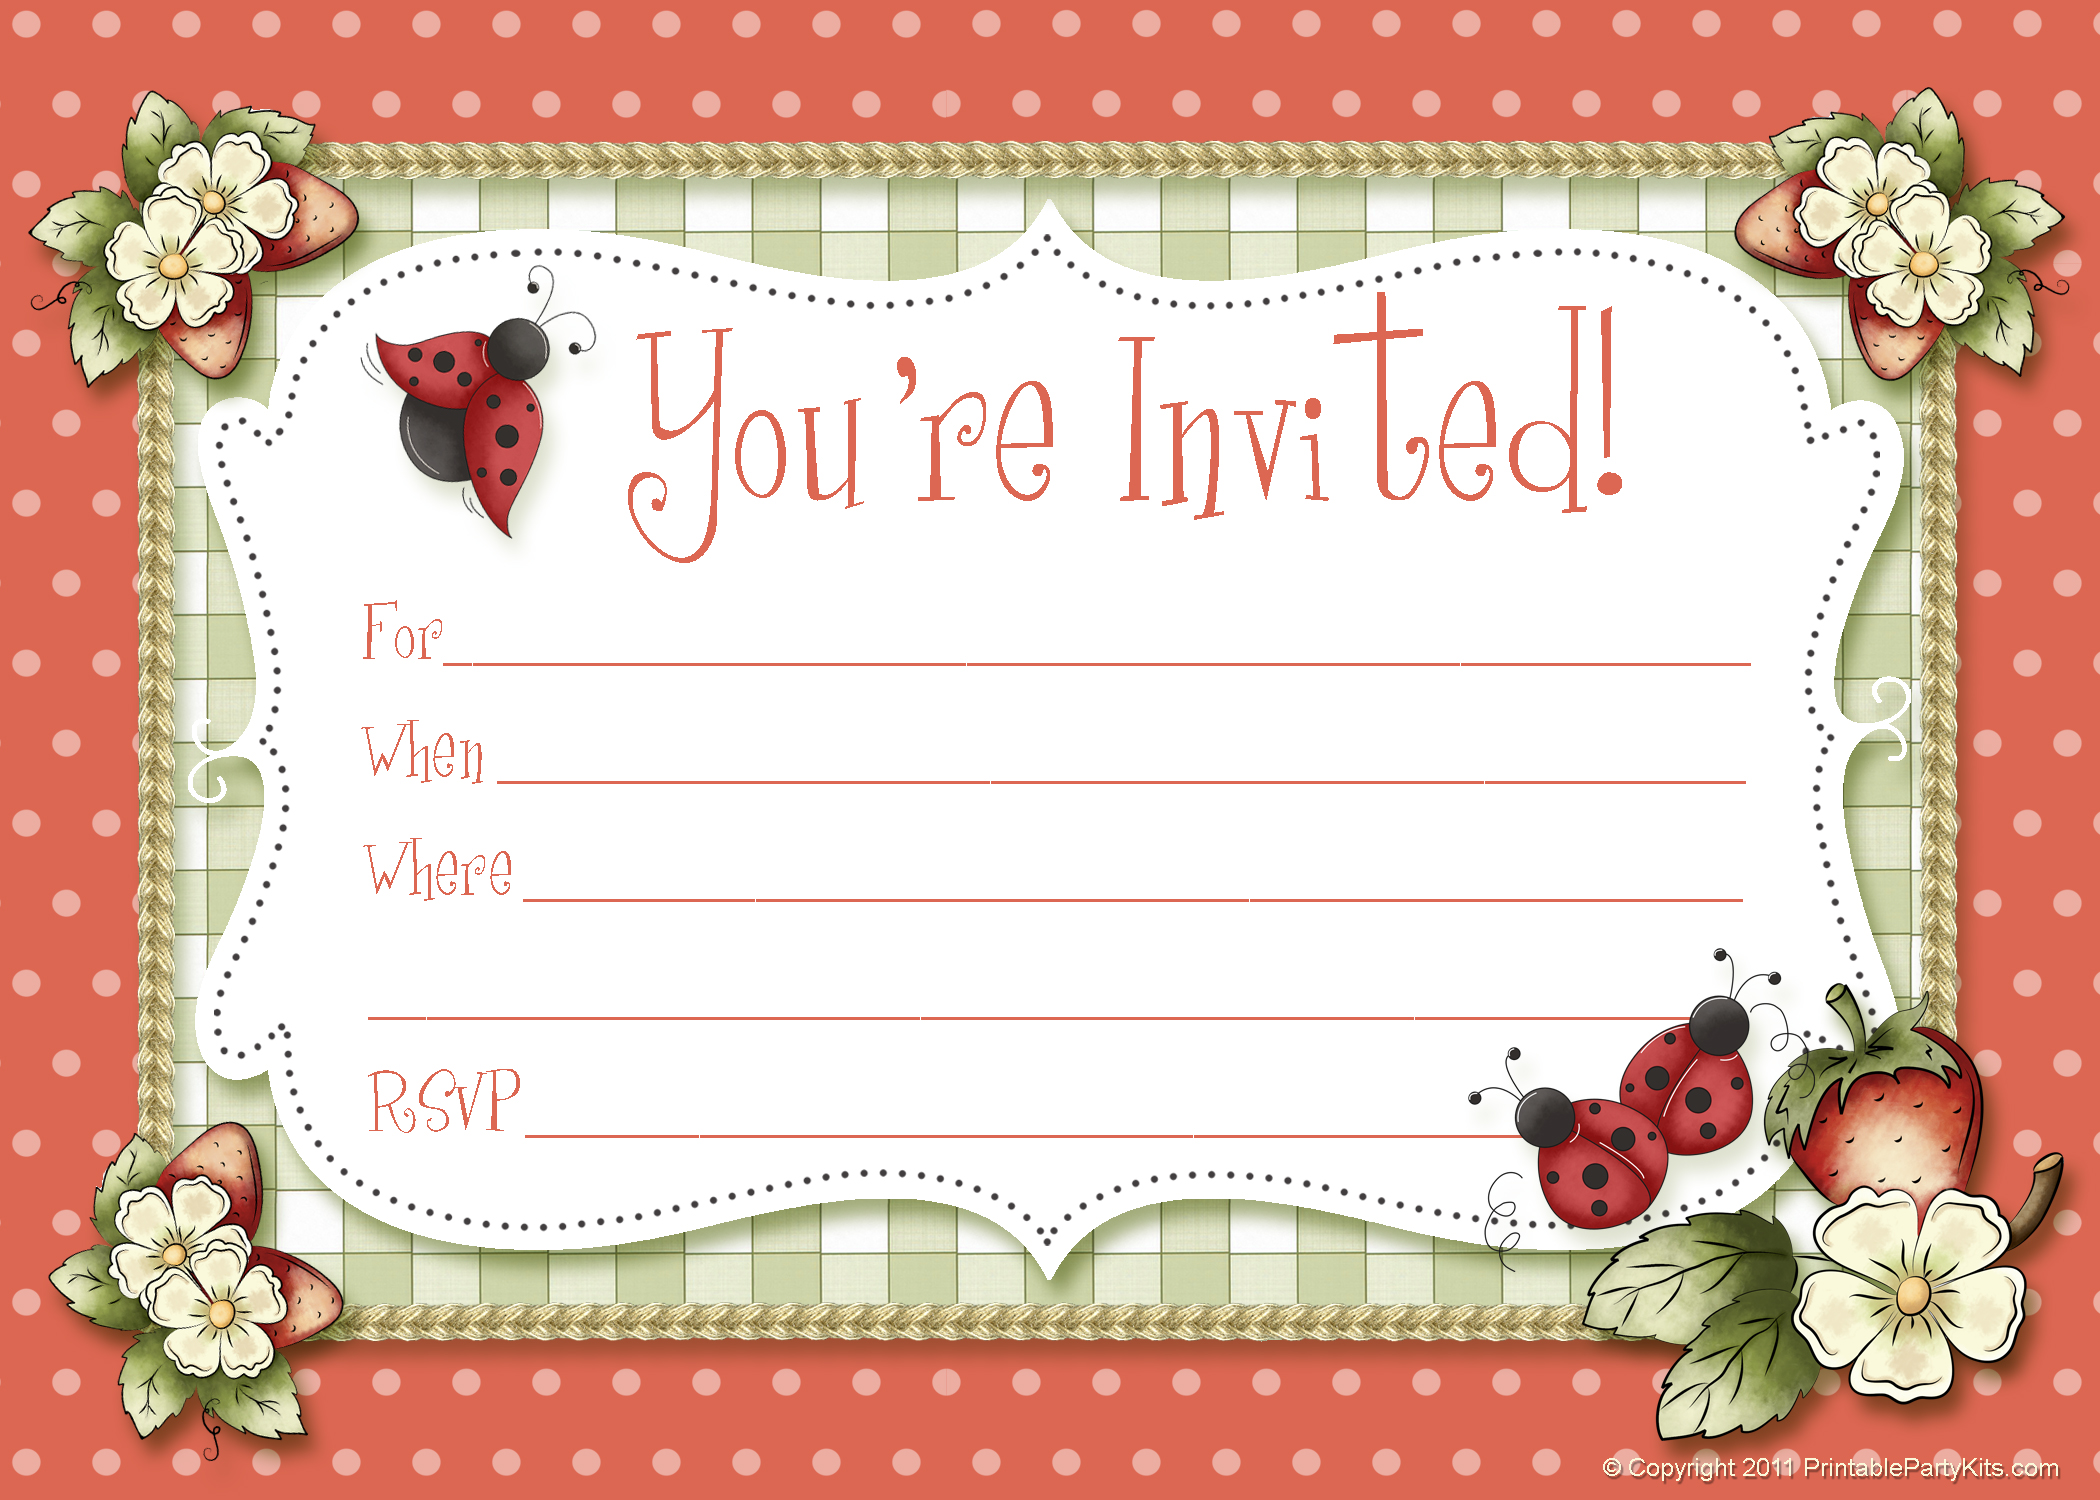 online birthday invitations kids free - Ecza.solinf.co